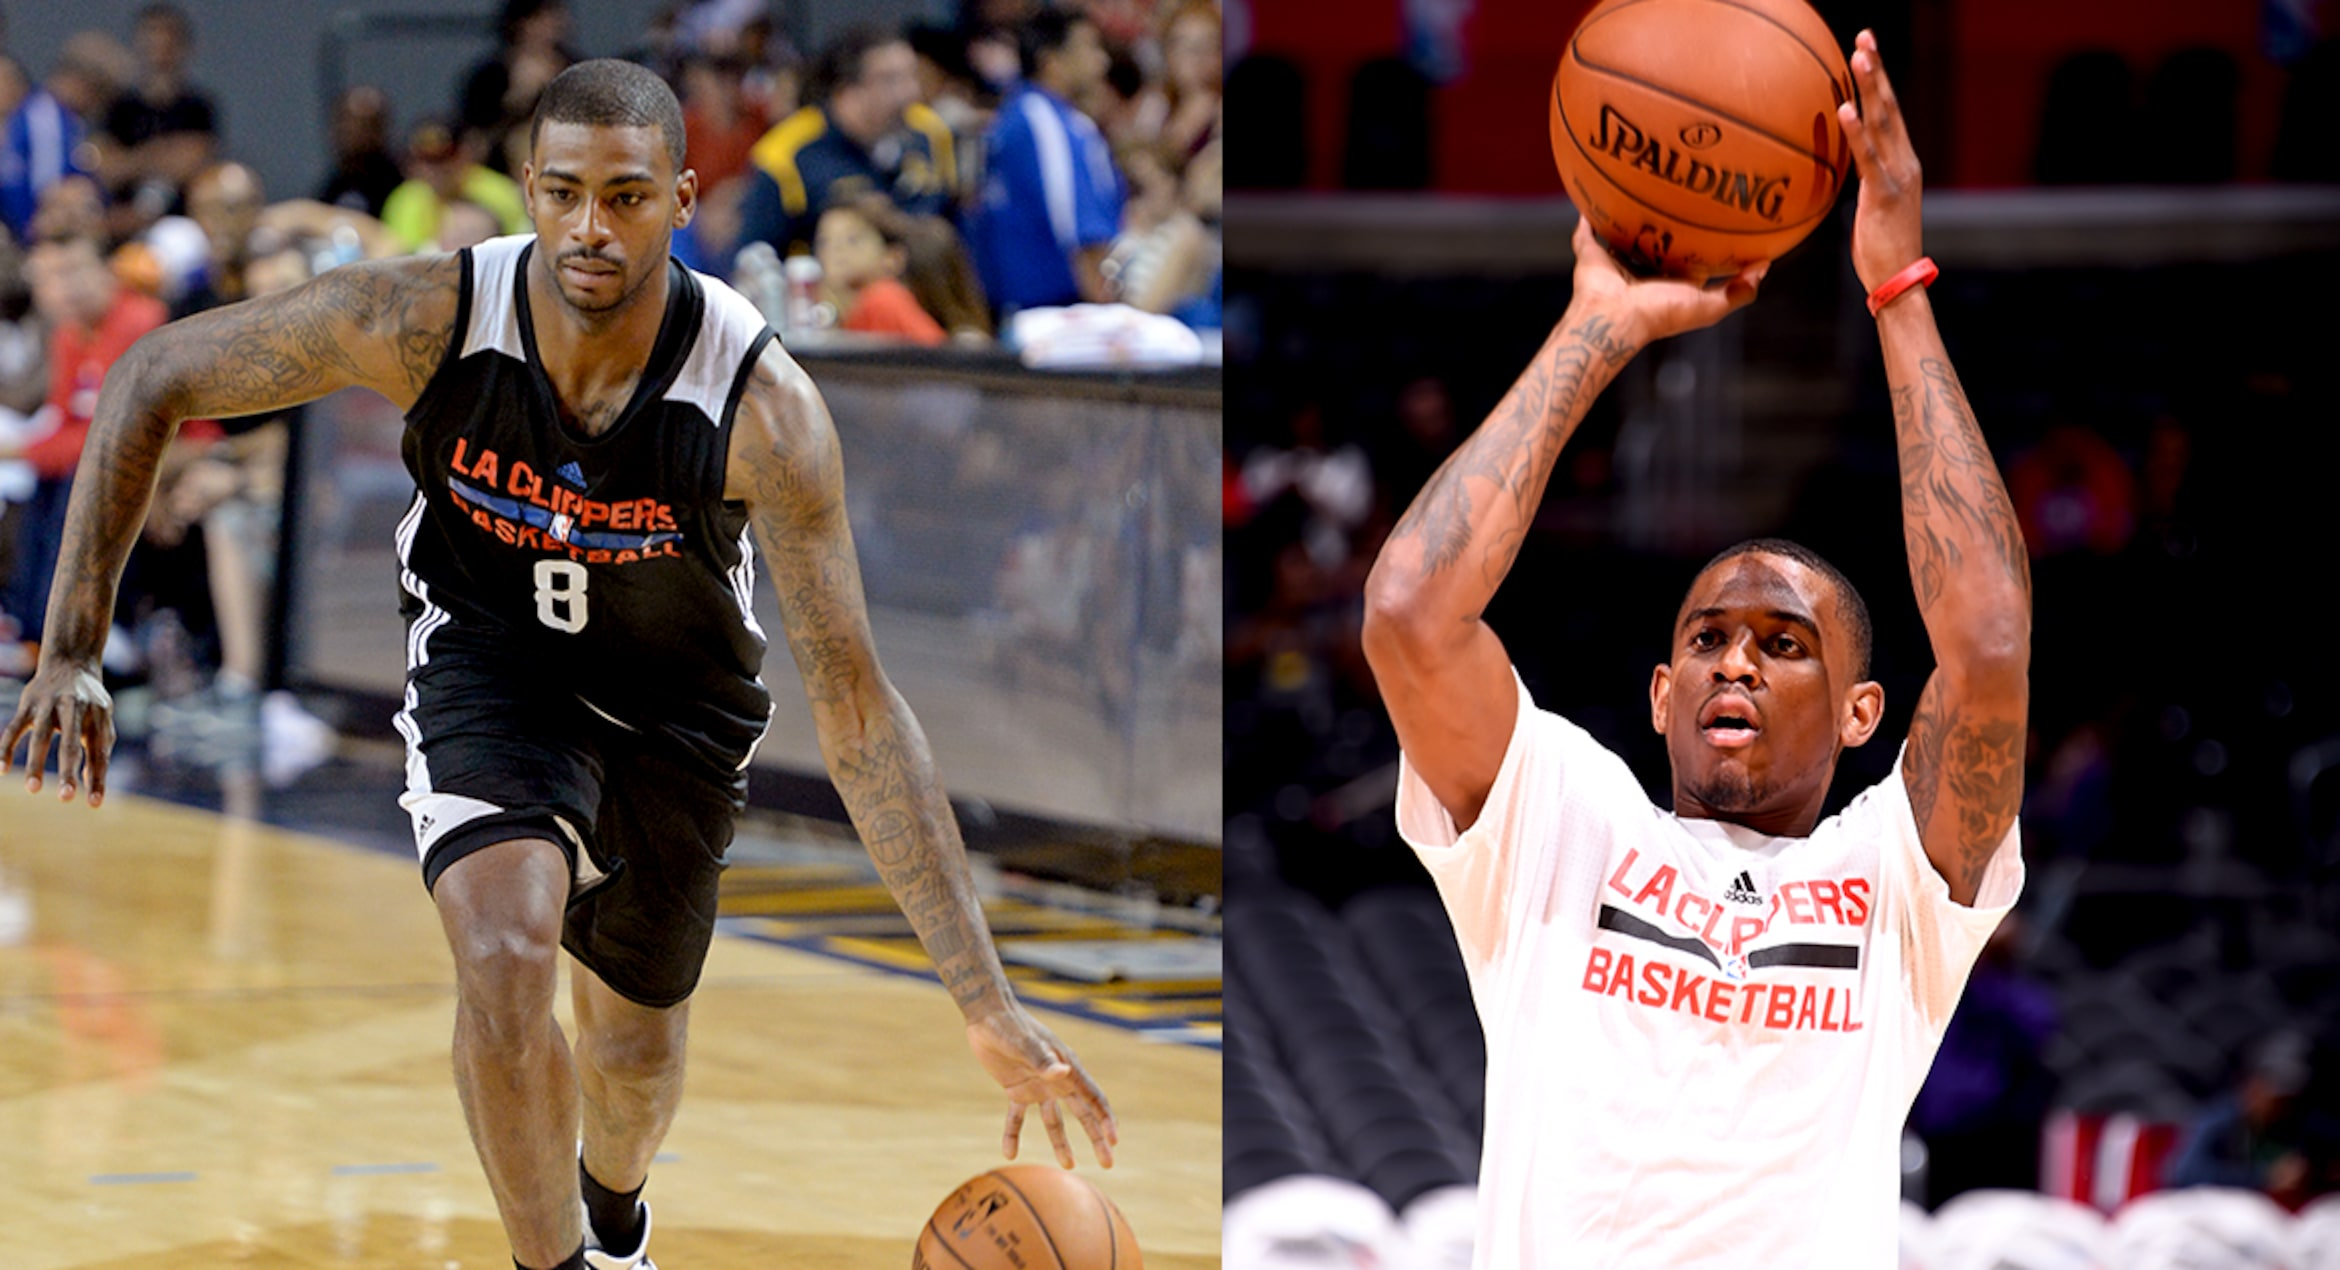 Image of Dorell Wright and Xaiver Munford